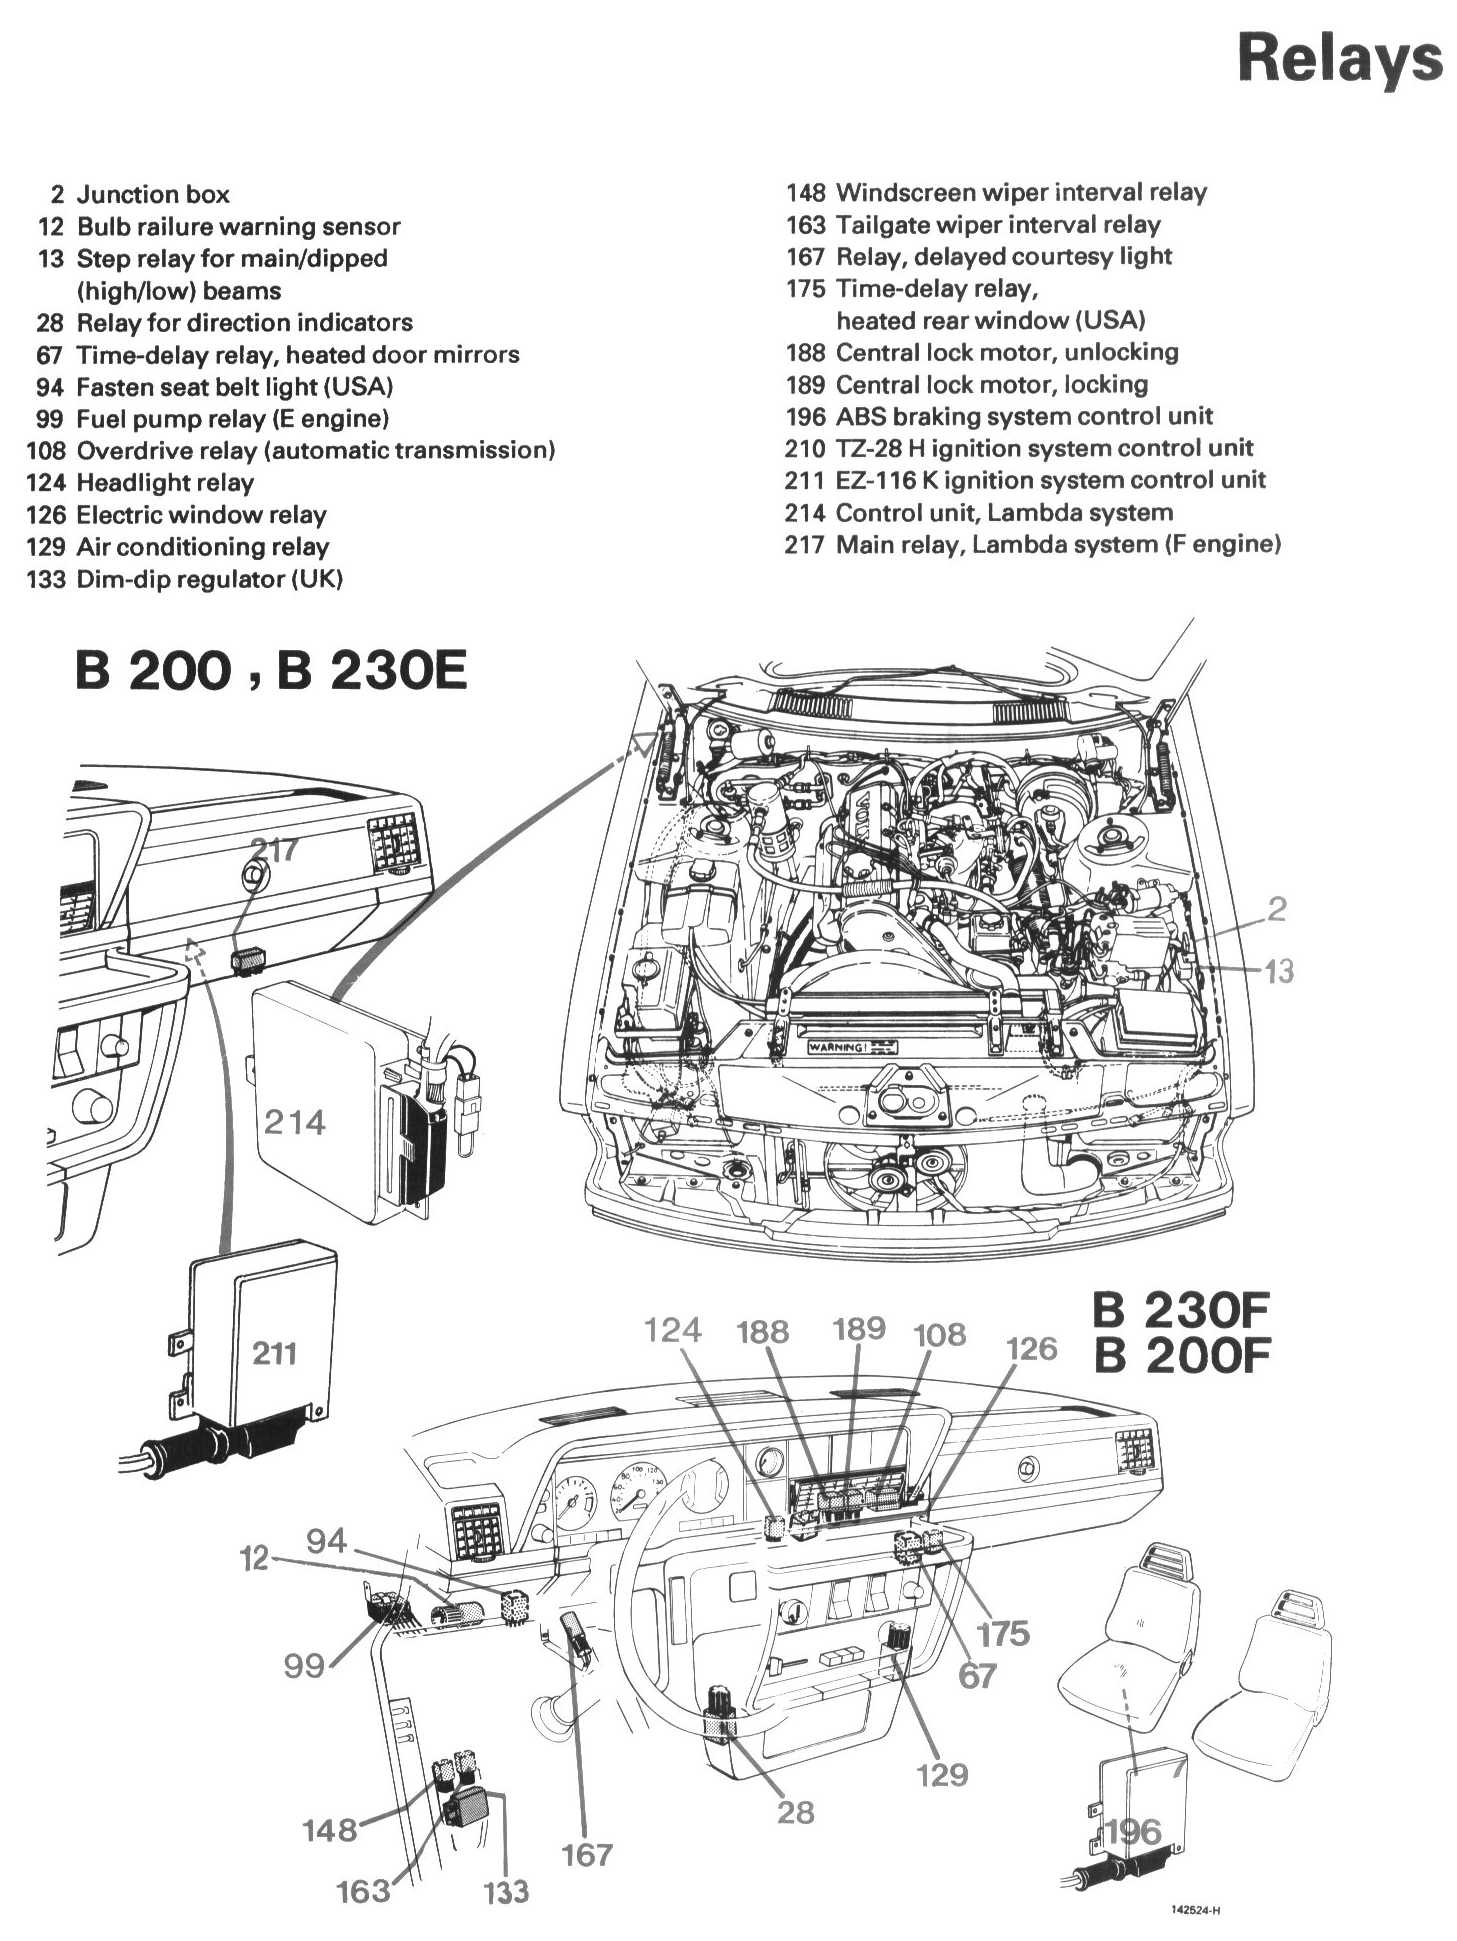 1992 Volvo Relay Diagram Electrical Wiring Diagrams 240 Ke Light Download U2022 Fuel Pump Location